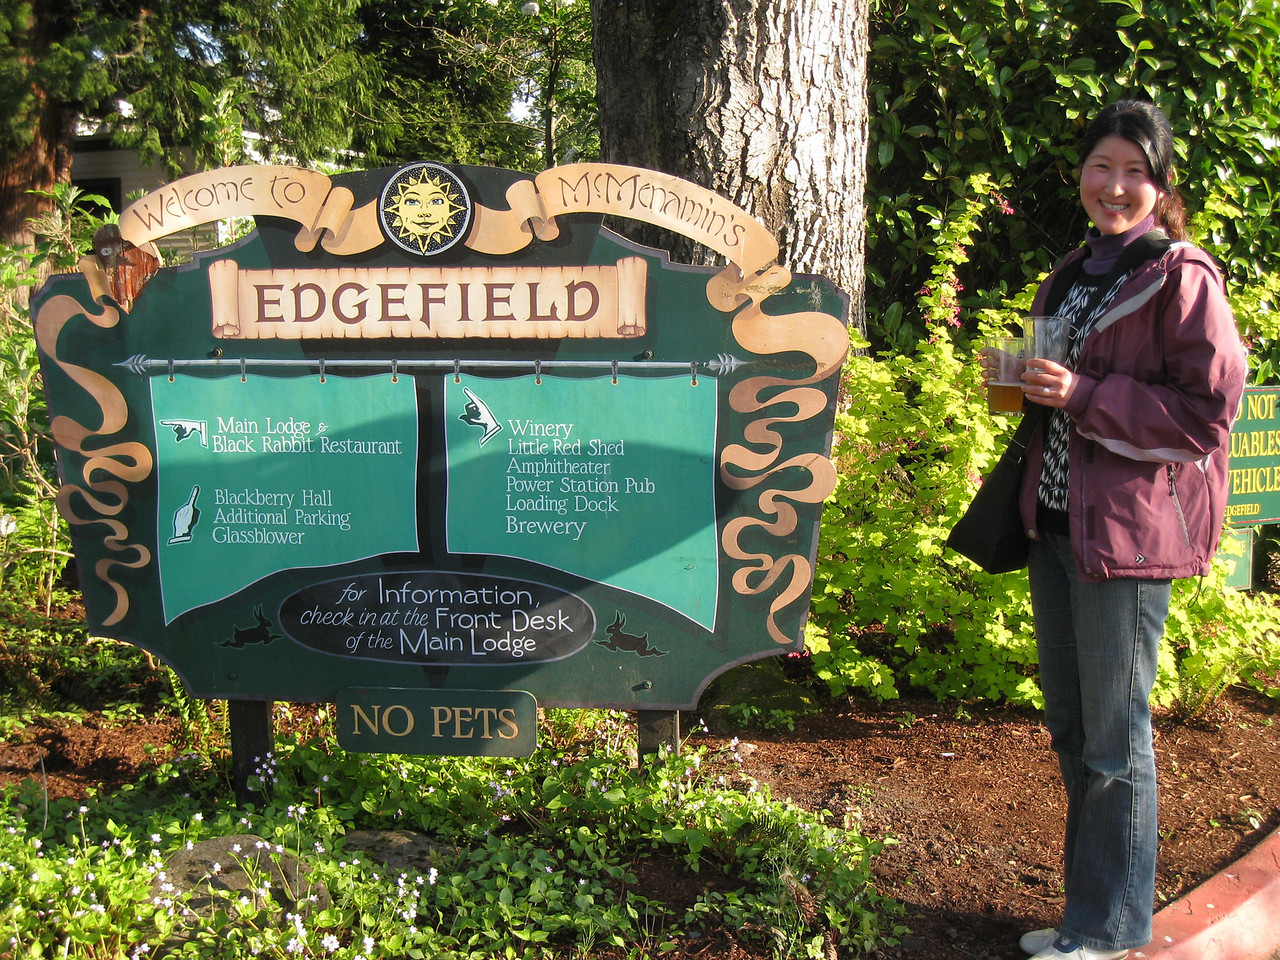 To celebrate the once year Anniversary of our Wedding Part we went to the MeMenamins Edgefiled for dinner. After a pretty cold & cloudy day the Sun came out for the evening & it warmed up. The Edgefield